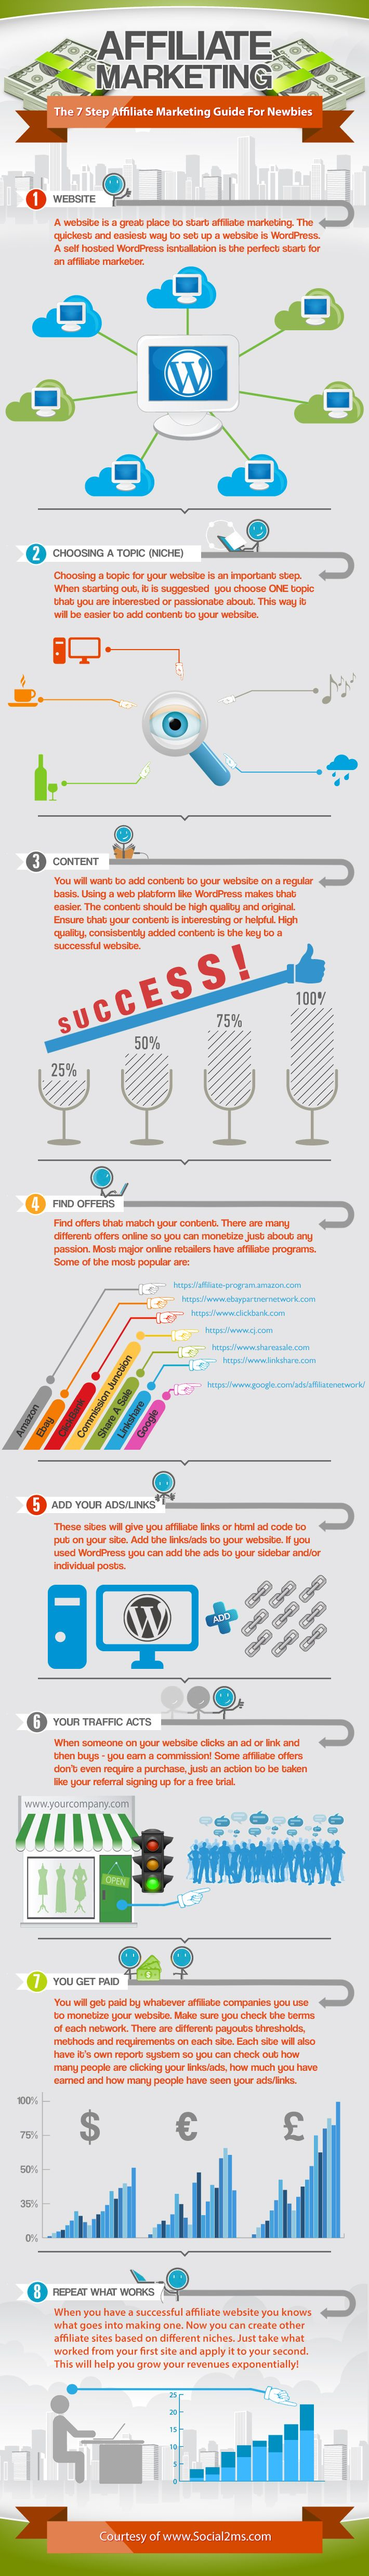 If you are a newbie in the #affiliate marketing, check out this 7 Step affiliate #marketing guide to get some help.Decor Infographic, Online Marketing, Internet Marketing, Step Affiliate, Social Media, Marketing Guide, Make Money Online, Affiliate Marketing, Socialmedia